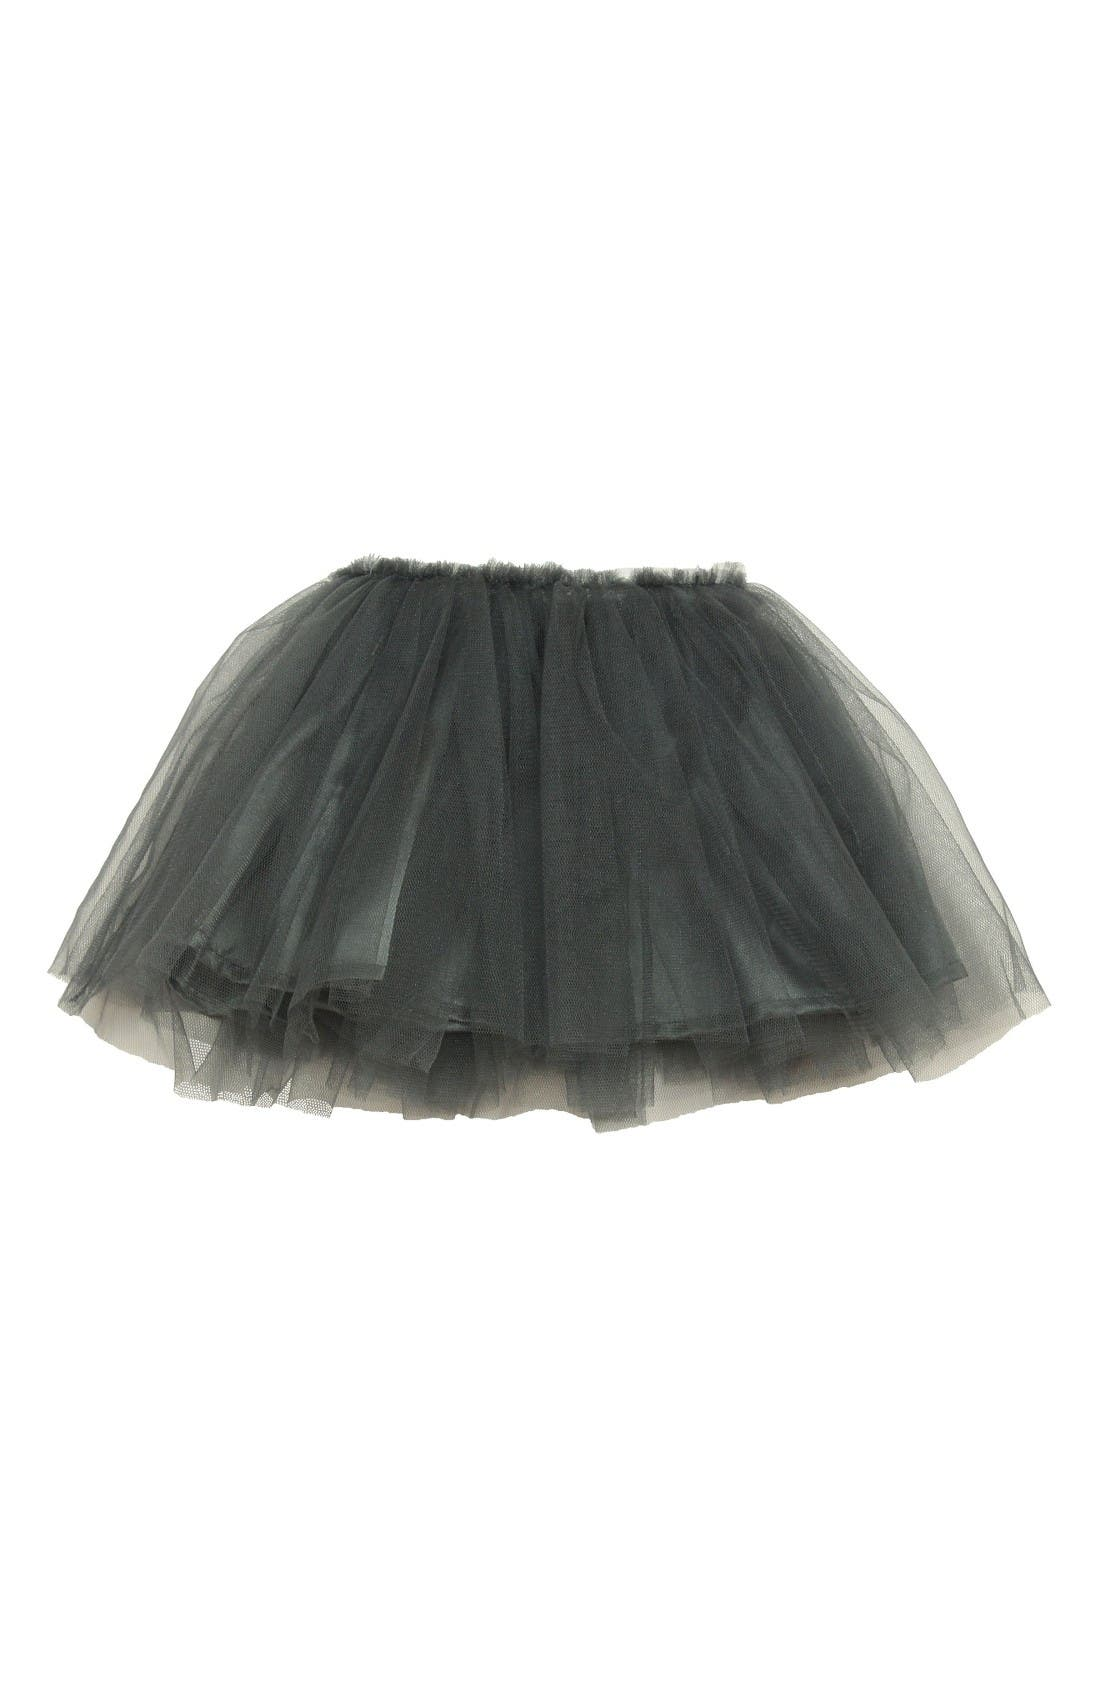 Gold Star Tutu Skirt,                             Alternate thumbnail 2, color,                             Dark Grey